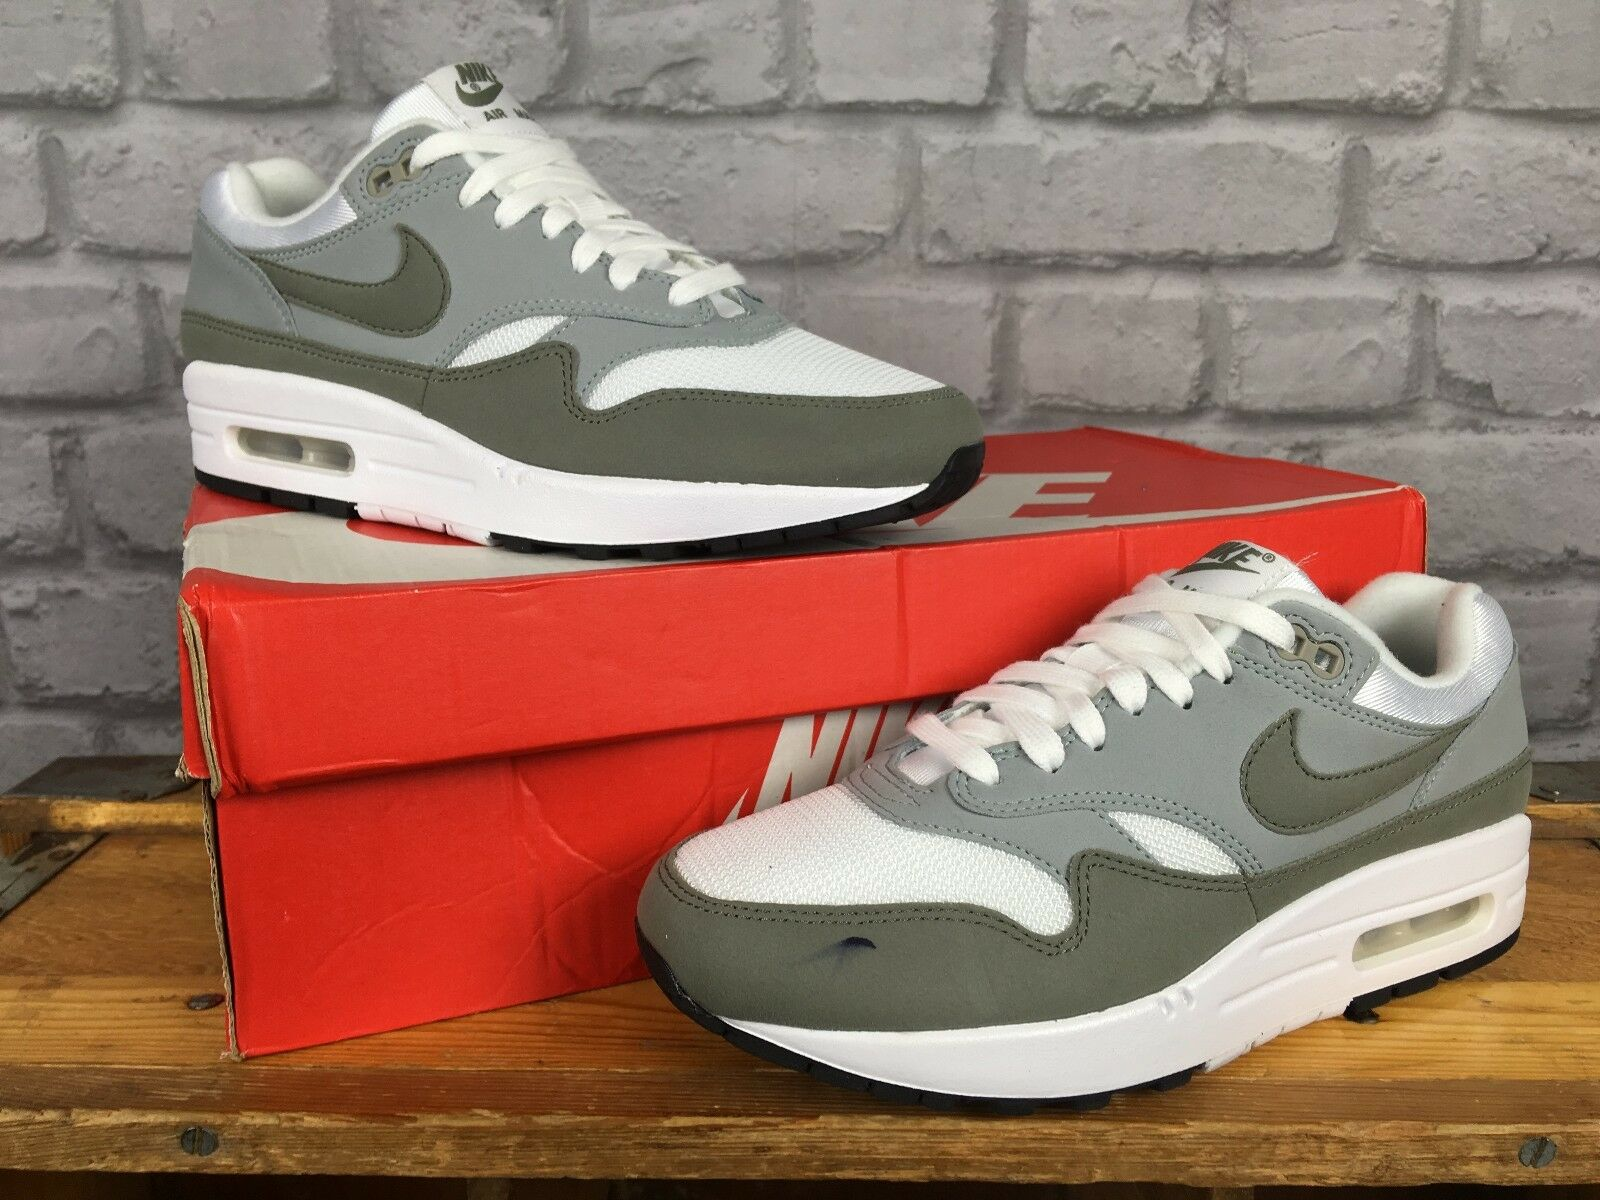 NIKE LADIES5 EU 38.5 Blanc LIGHT PUMICE AIR MAX 1 PREMIUM TRAINERS Vert